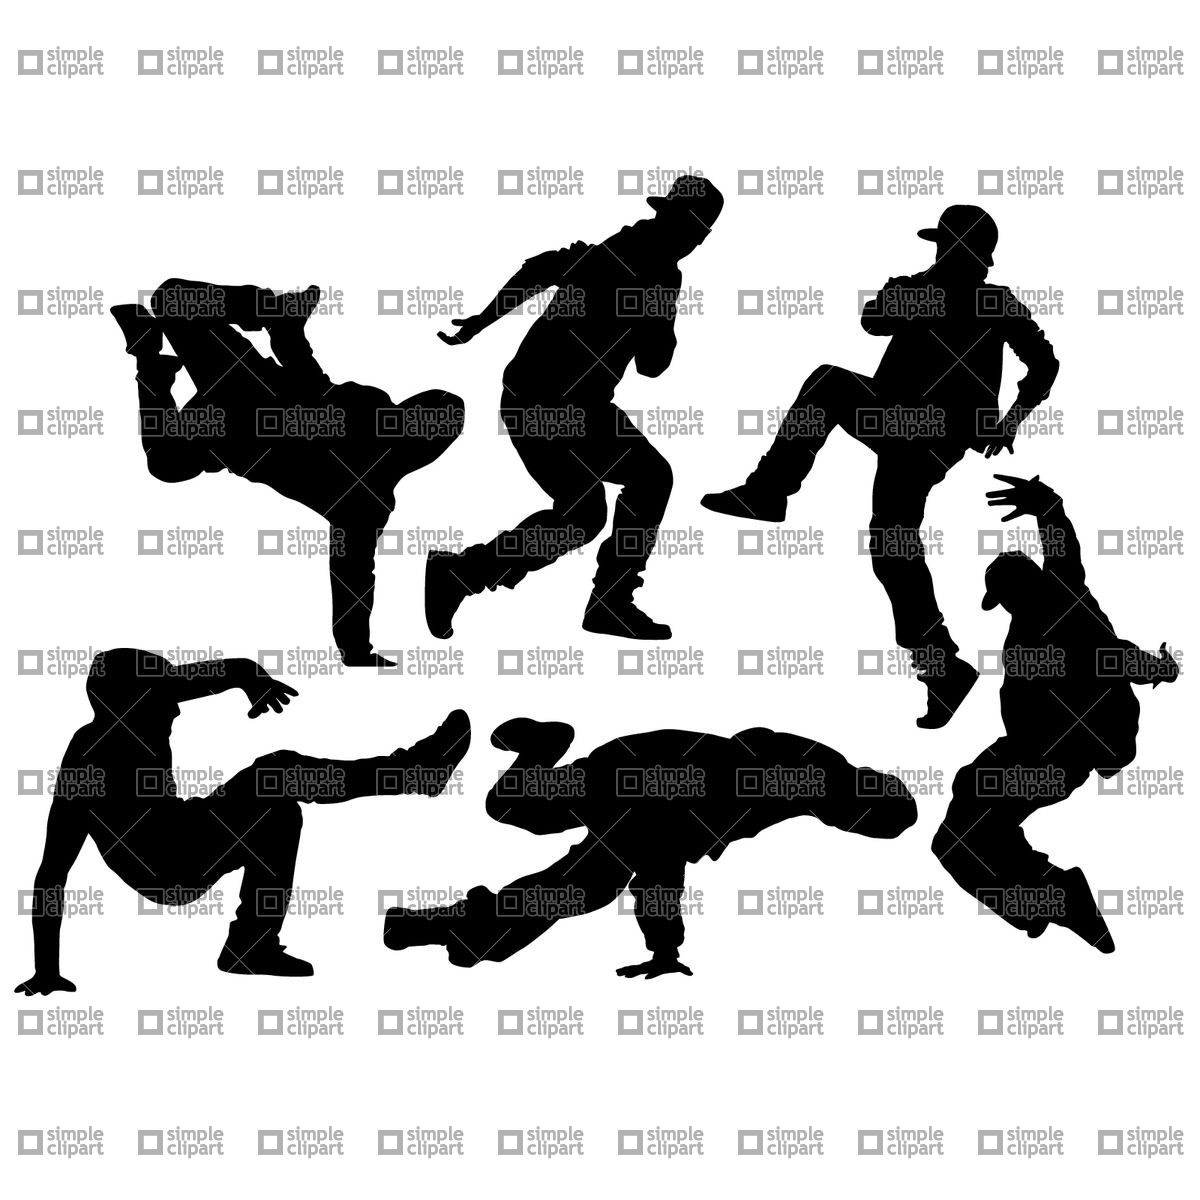 Hip Hop dancer silhouettes Vector Image #1761.